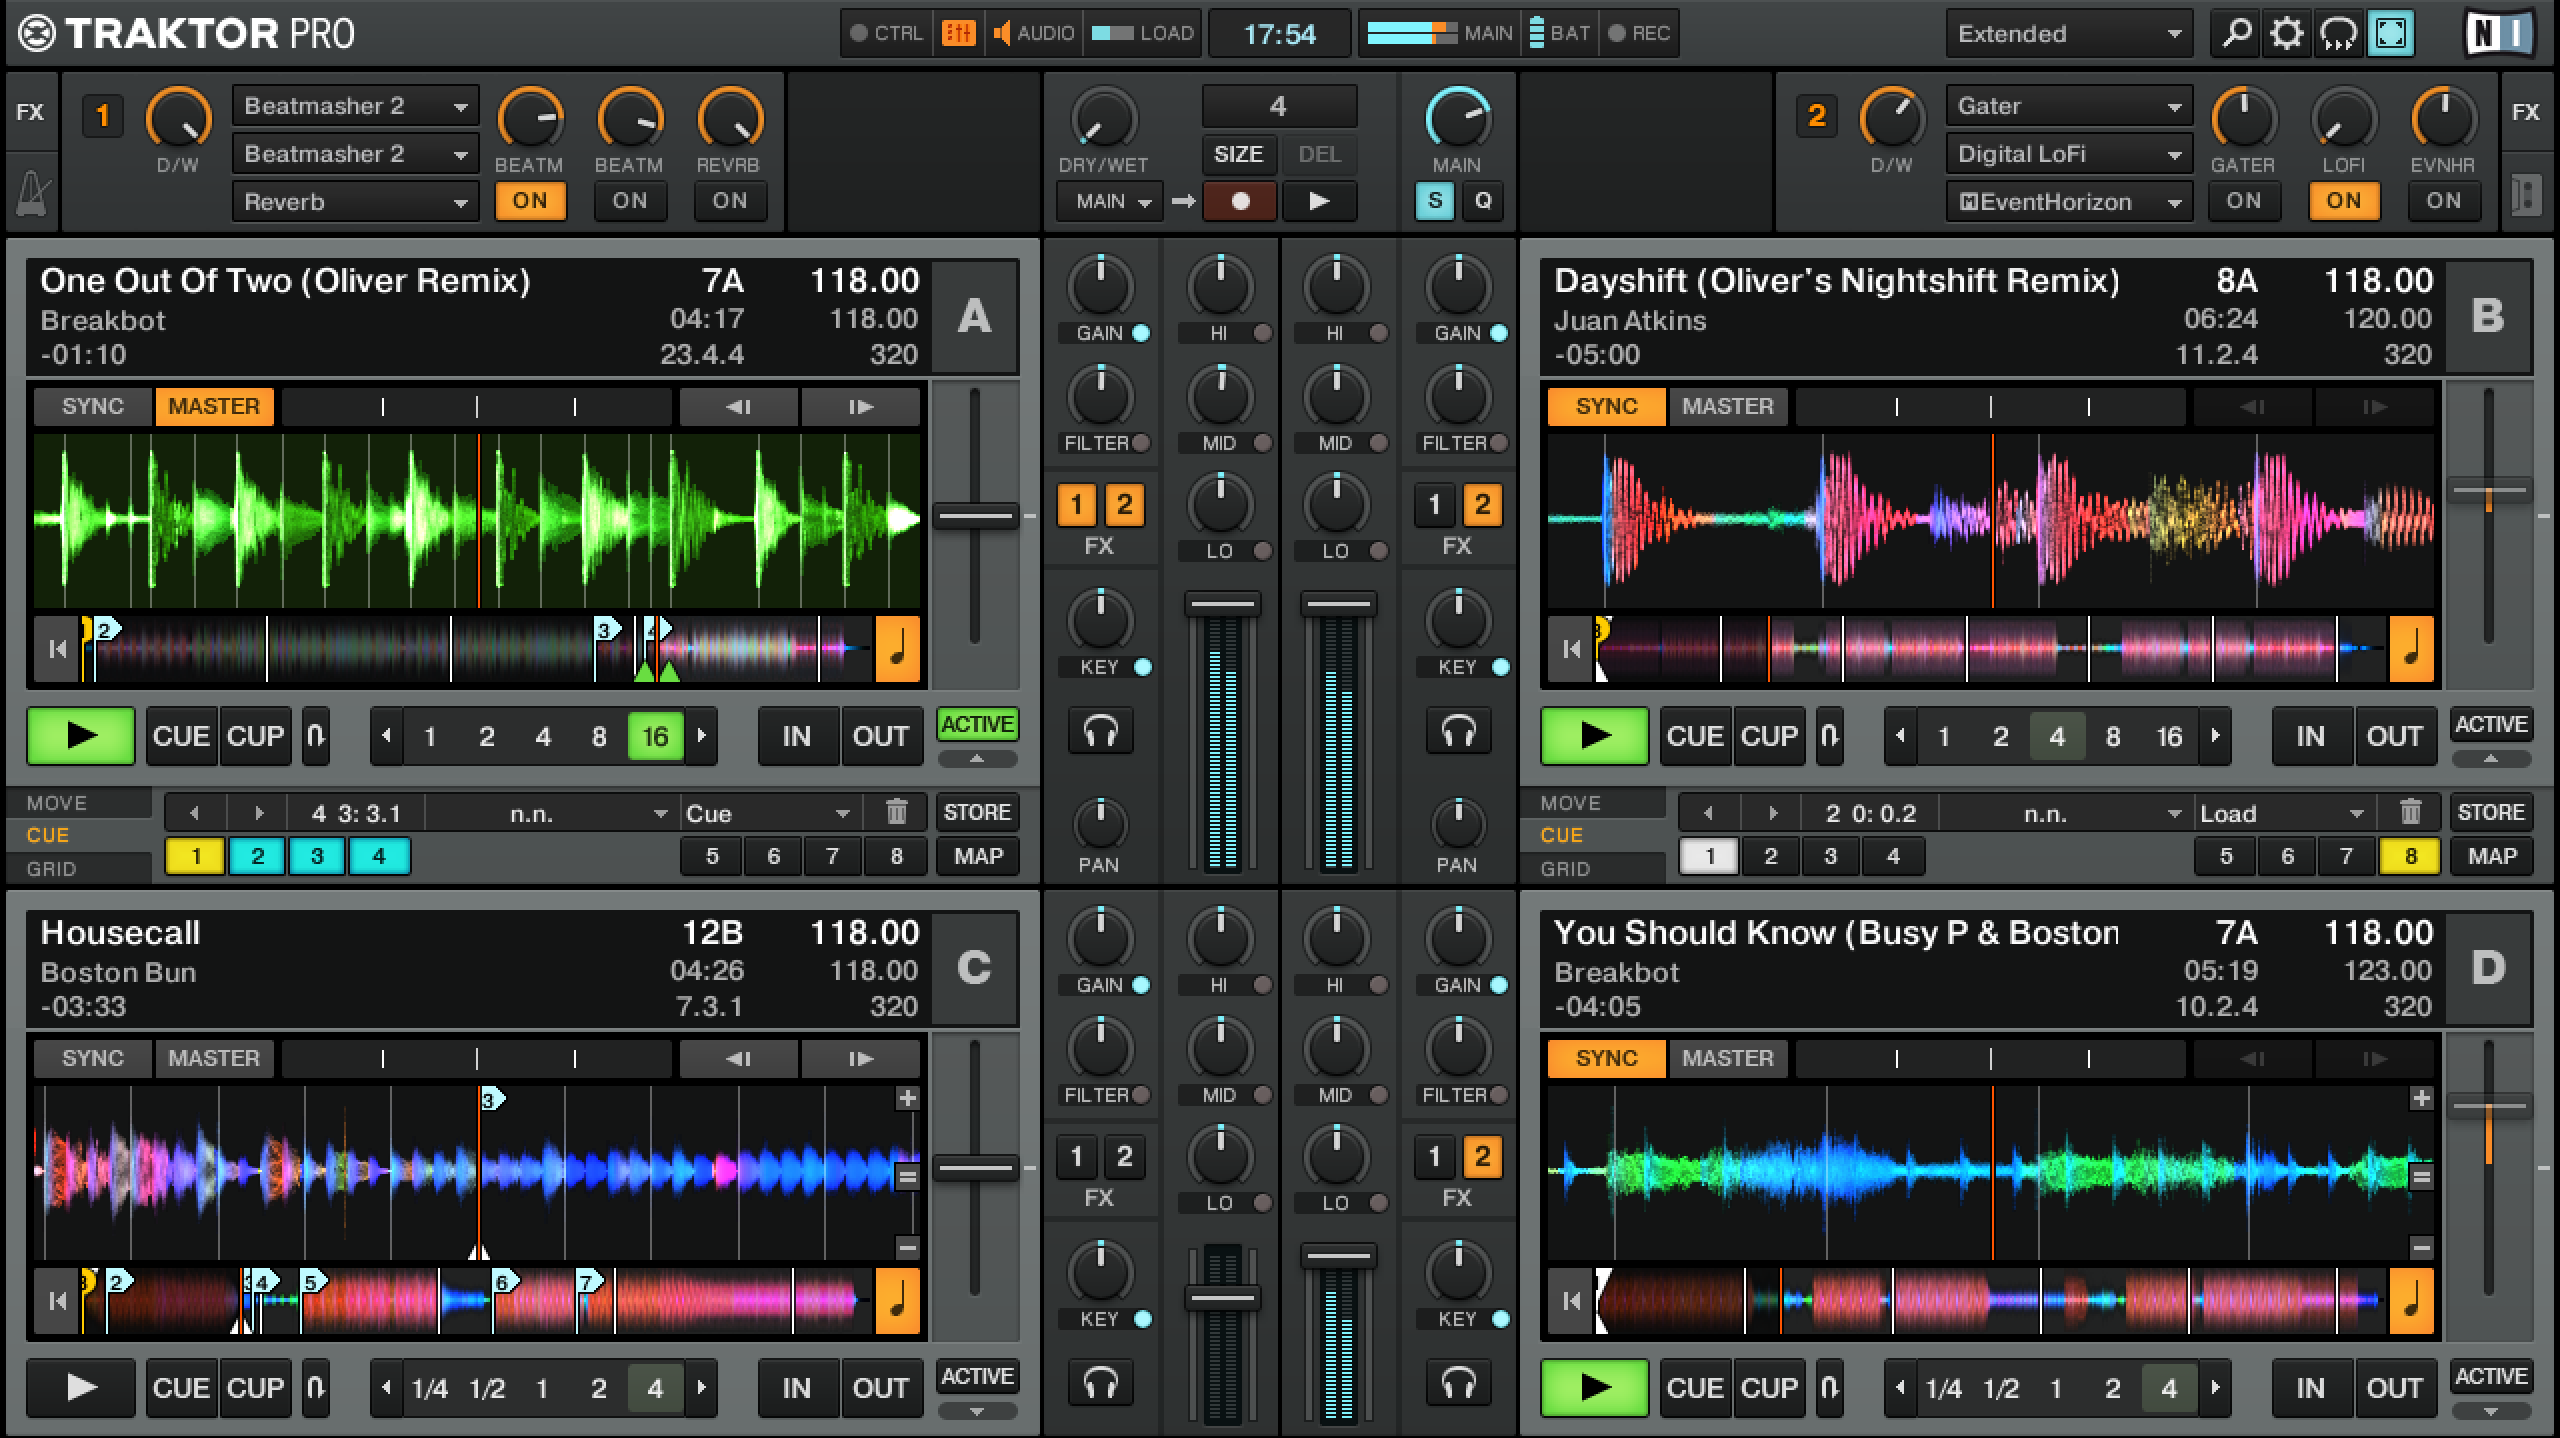 Interface 4 Decks de Traktor.